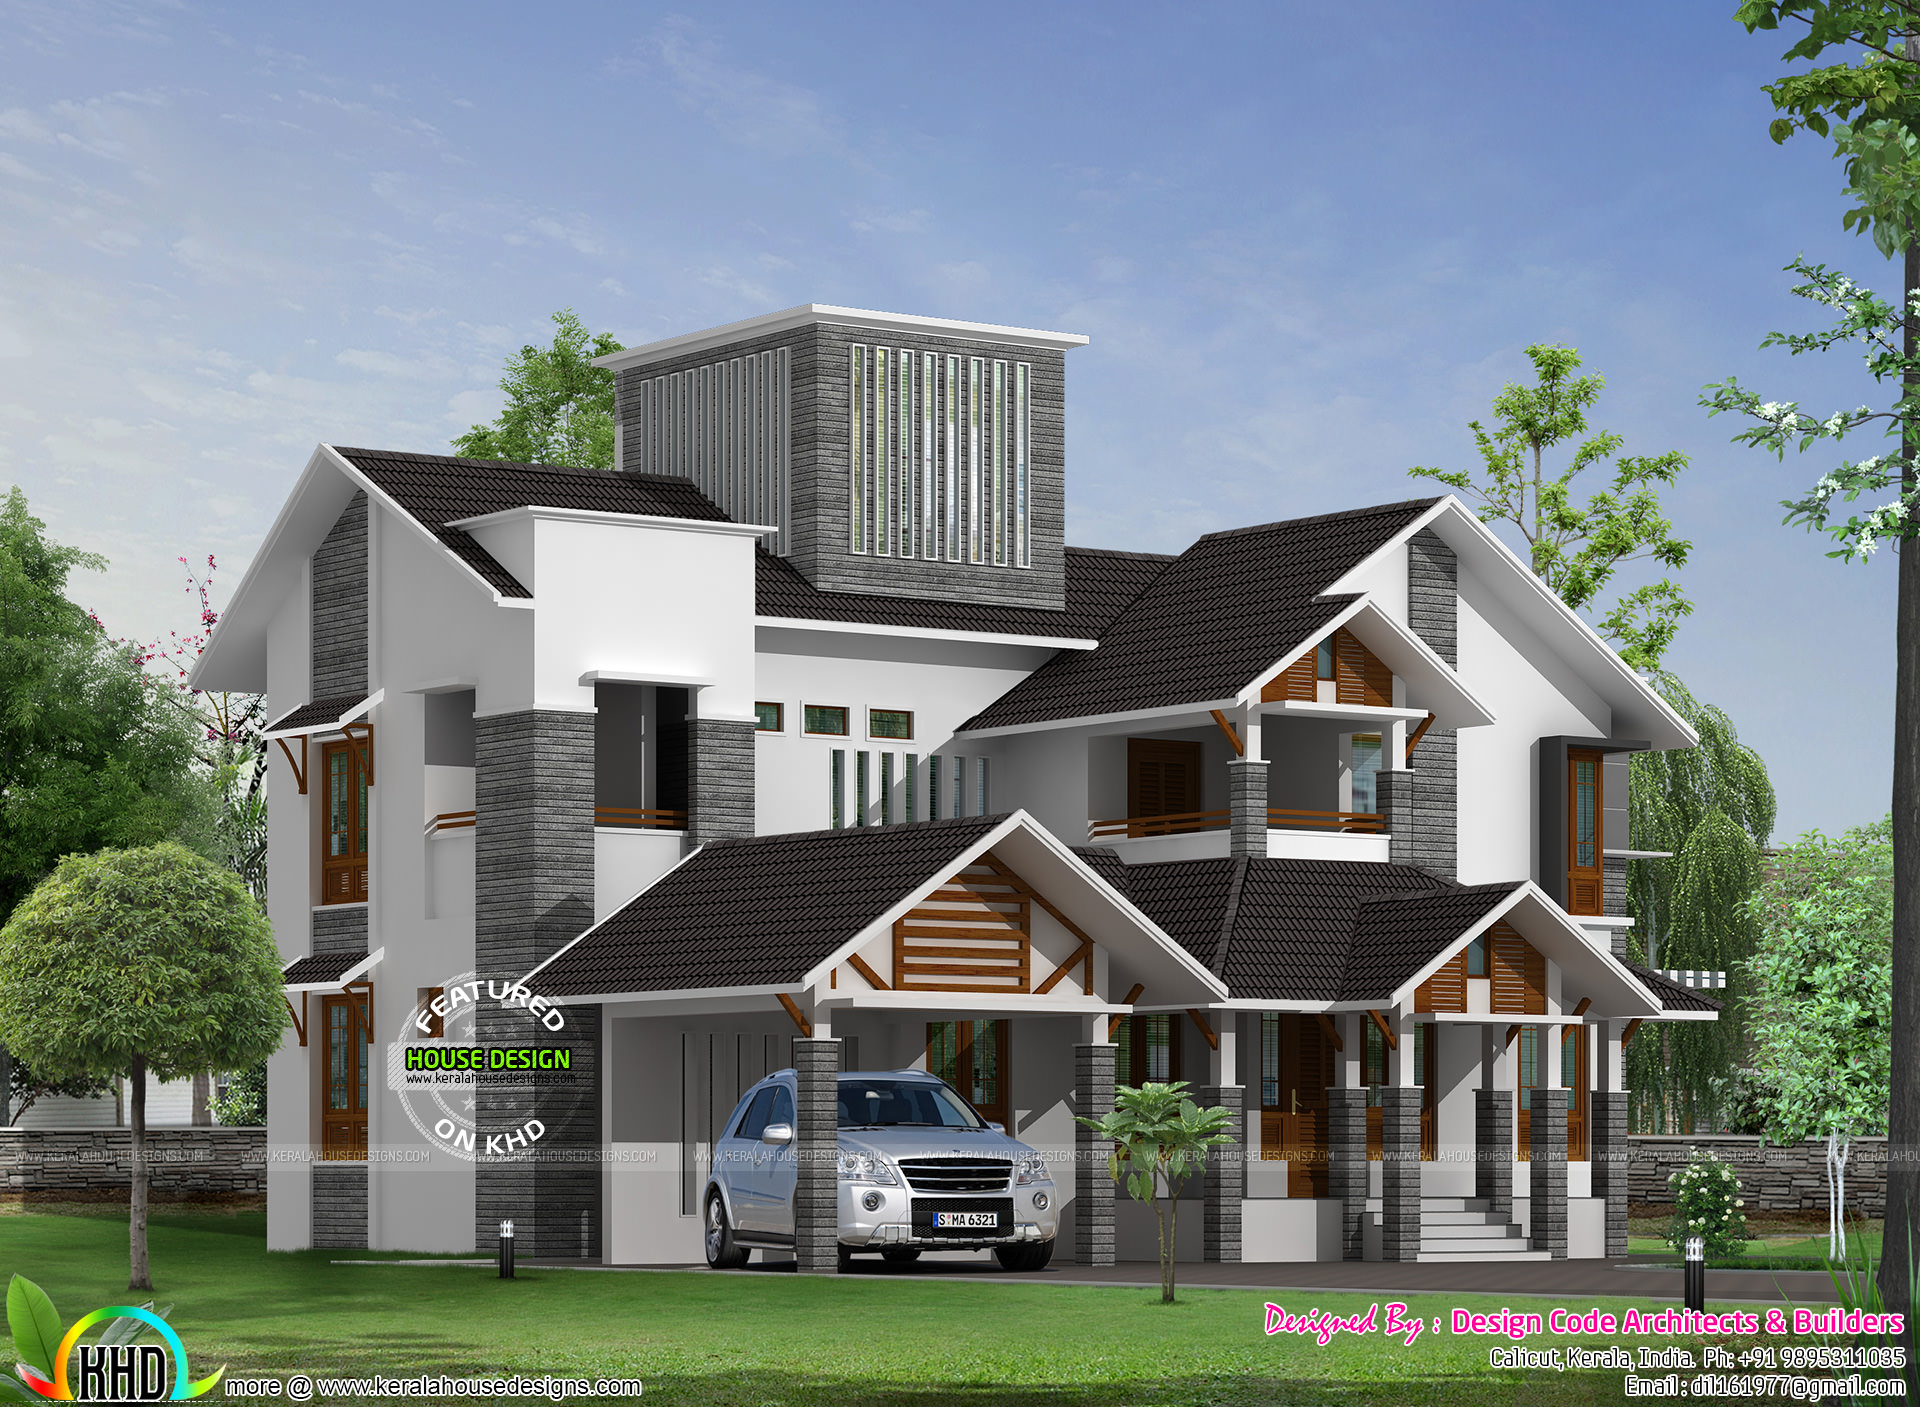 389 Sq Yd Modern Sloping Roof Home Architecture Kerala